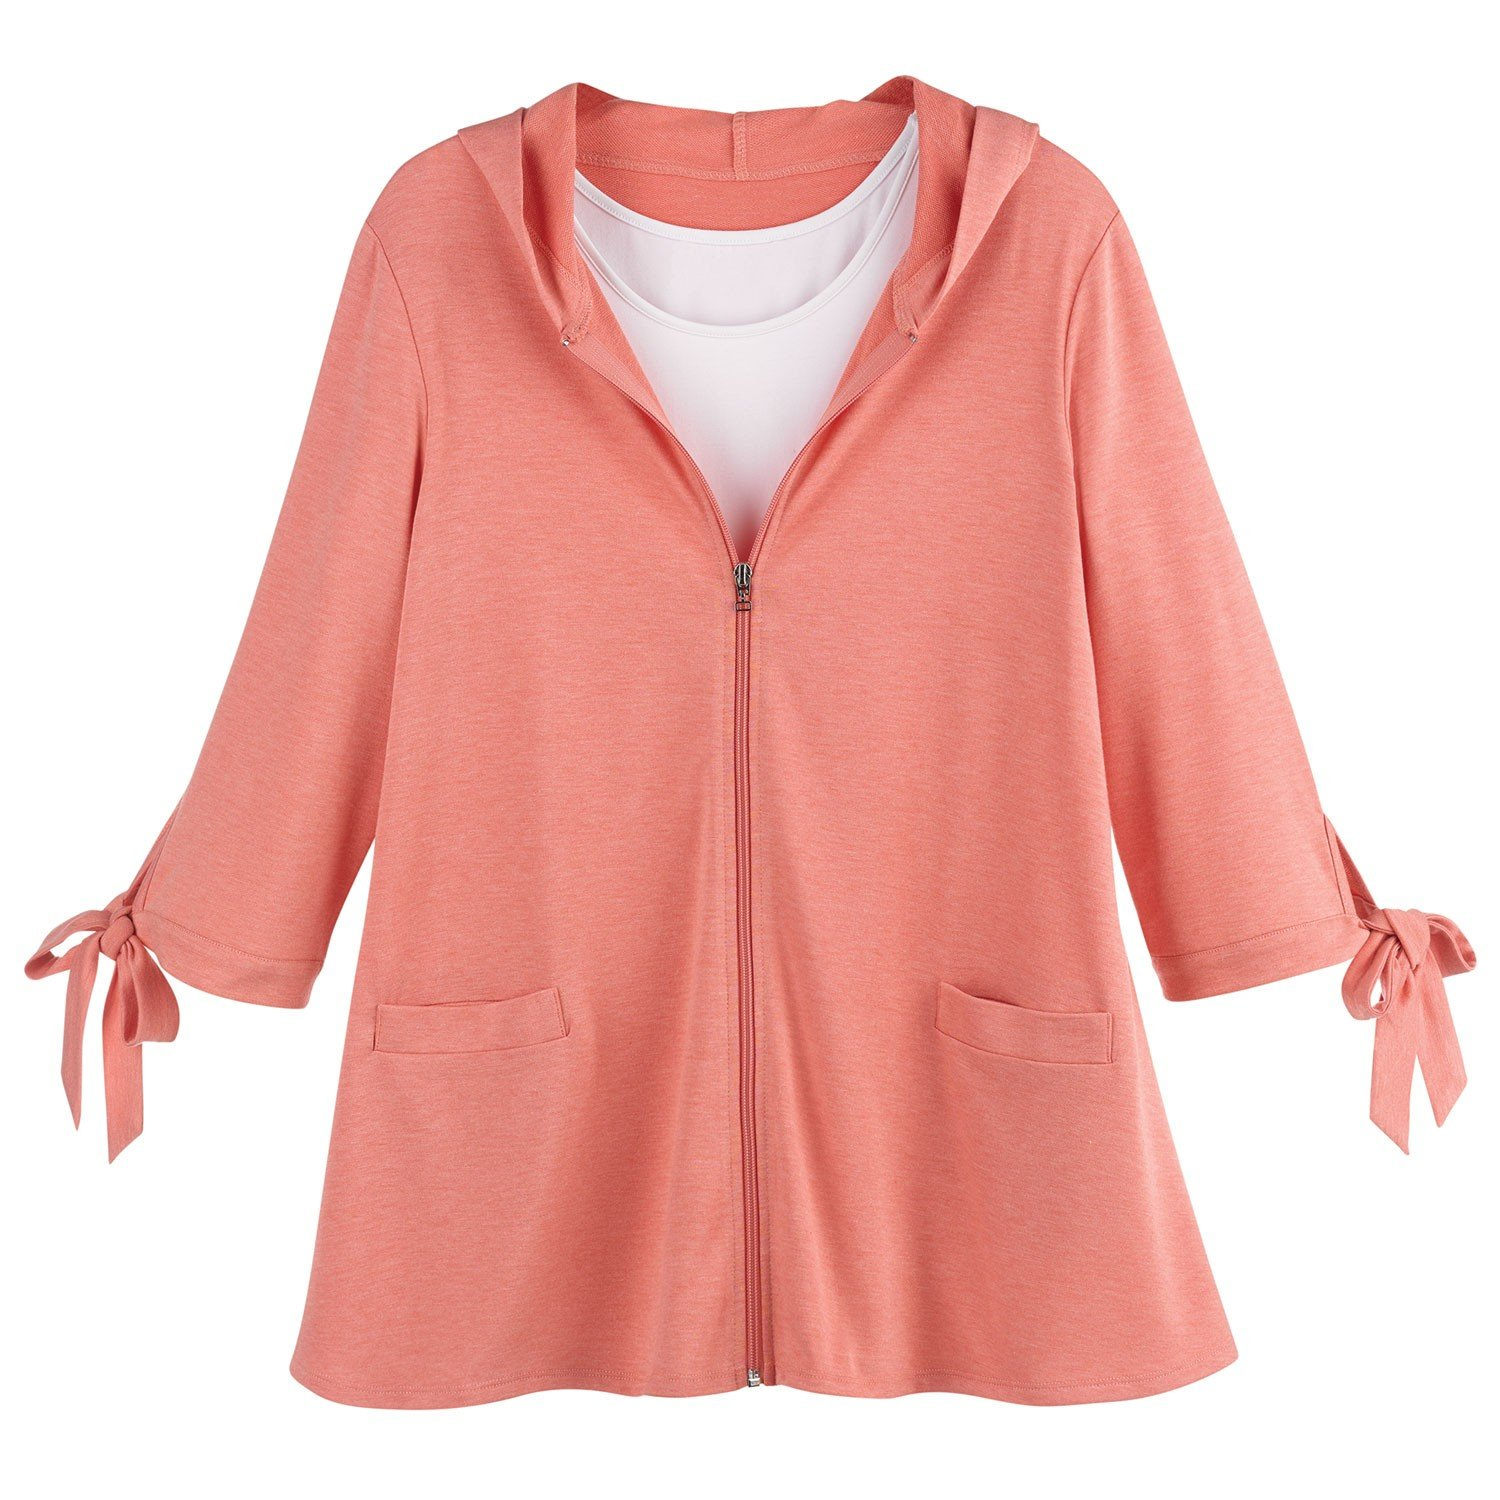 Ahh By Rhonda Shear Women's Zippered Swing Jacket - Tie Cuff 3/4 Sleeve Hoodie - Coral - 2X